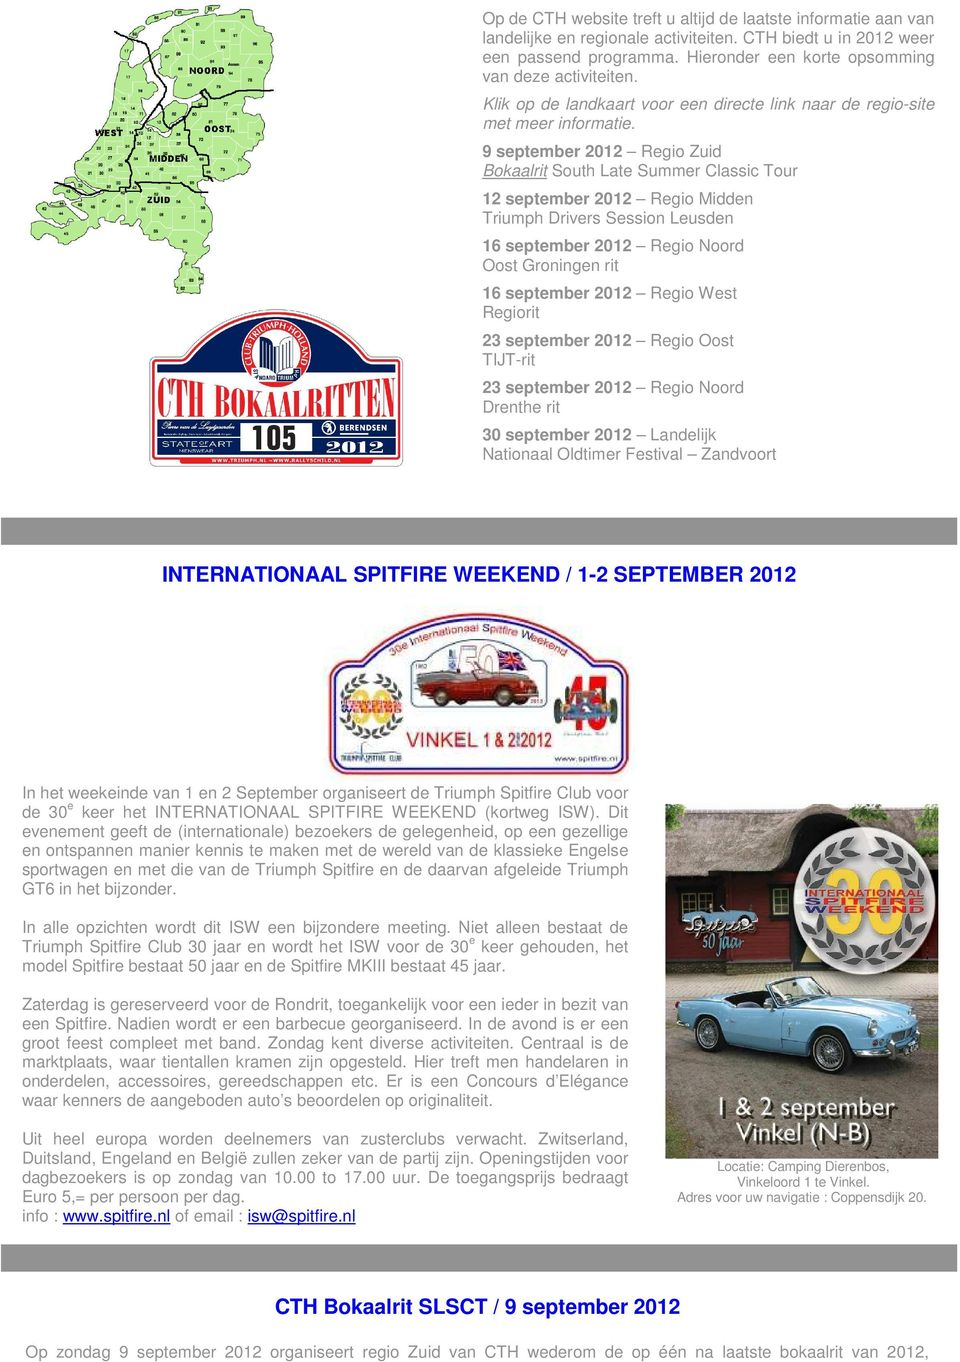 9 september 2012 Regio Zuid Bokaalrit South Late Summer Classic Tour 12 september 2012 Regio Midden Triumph Drivers Session Leusden 16 september 2012 Regio Noord Oost Groningen rit 16 september 2012